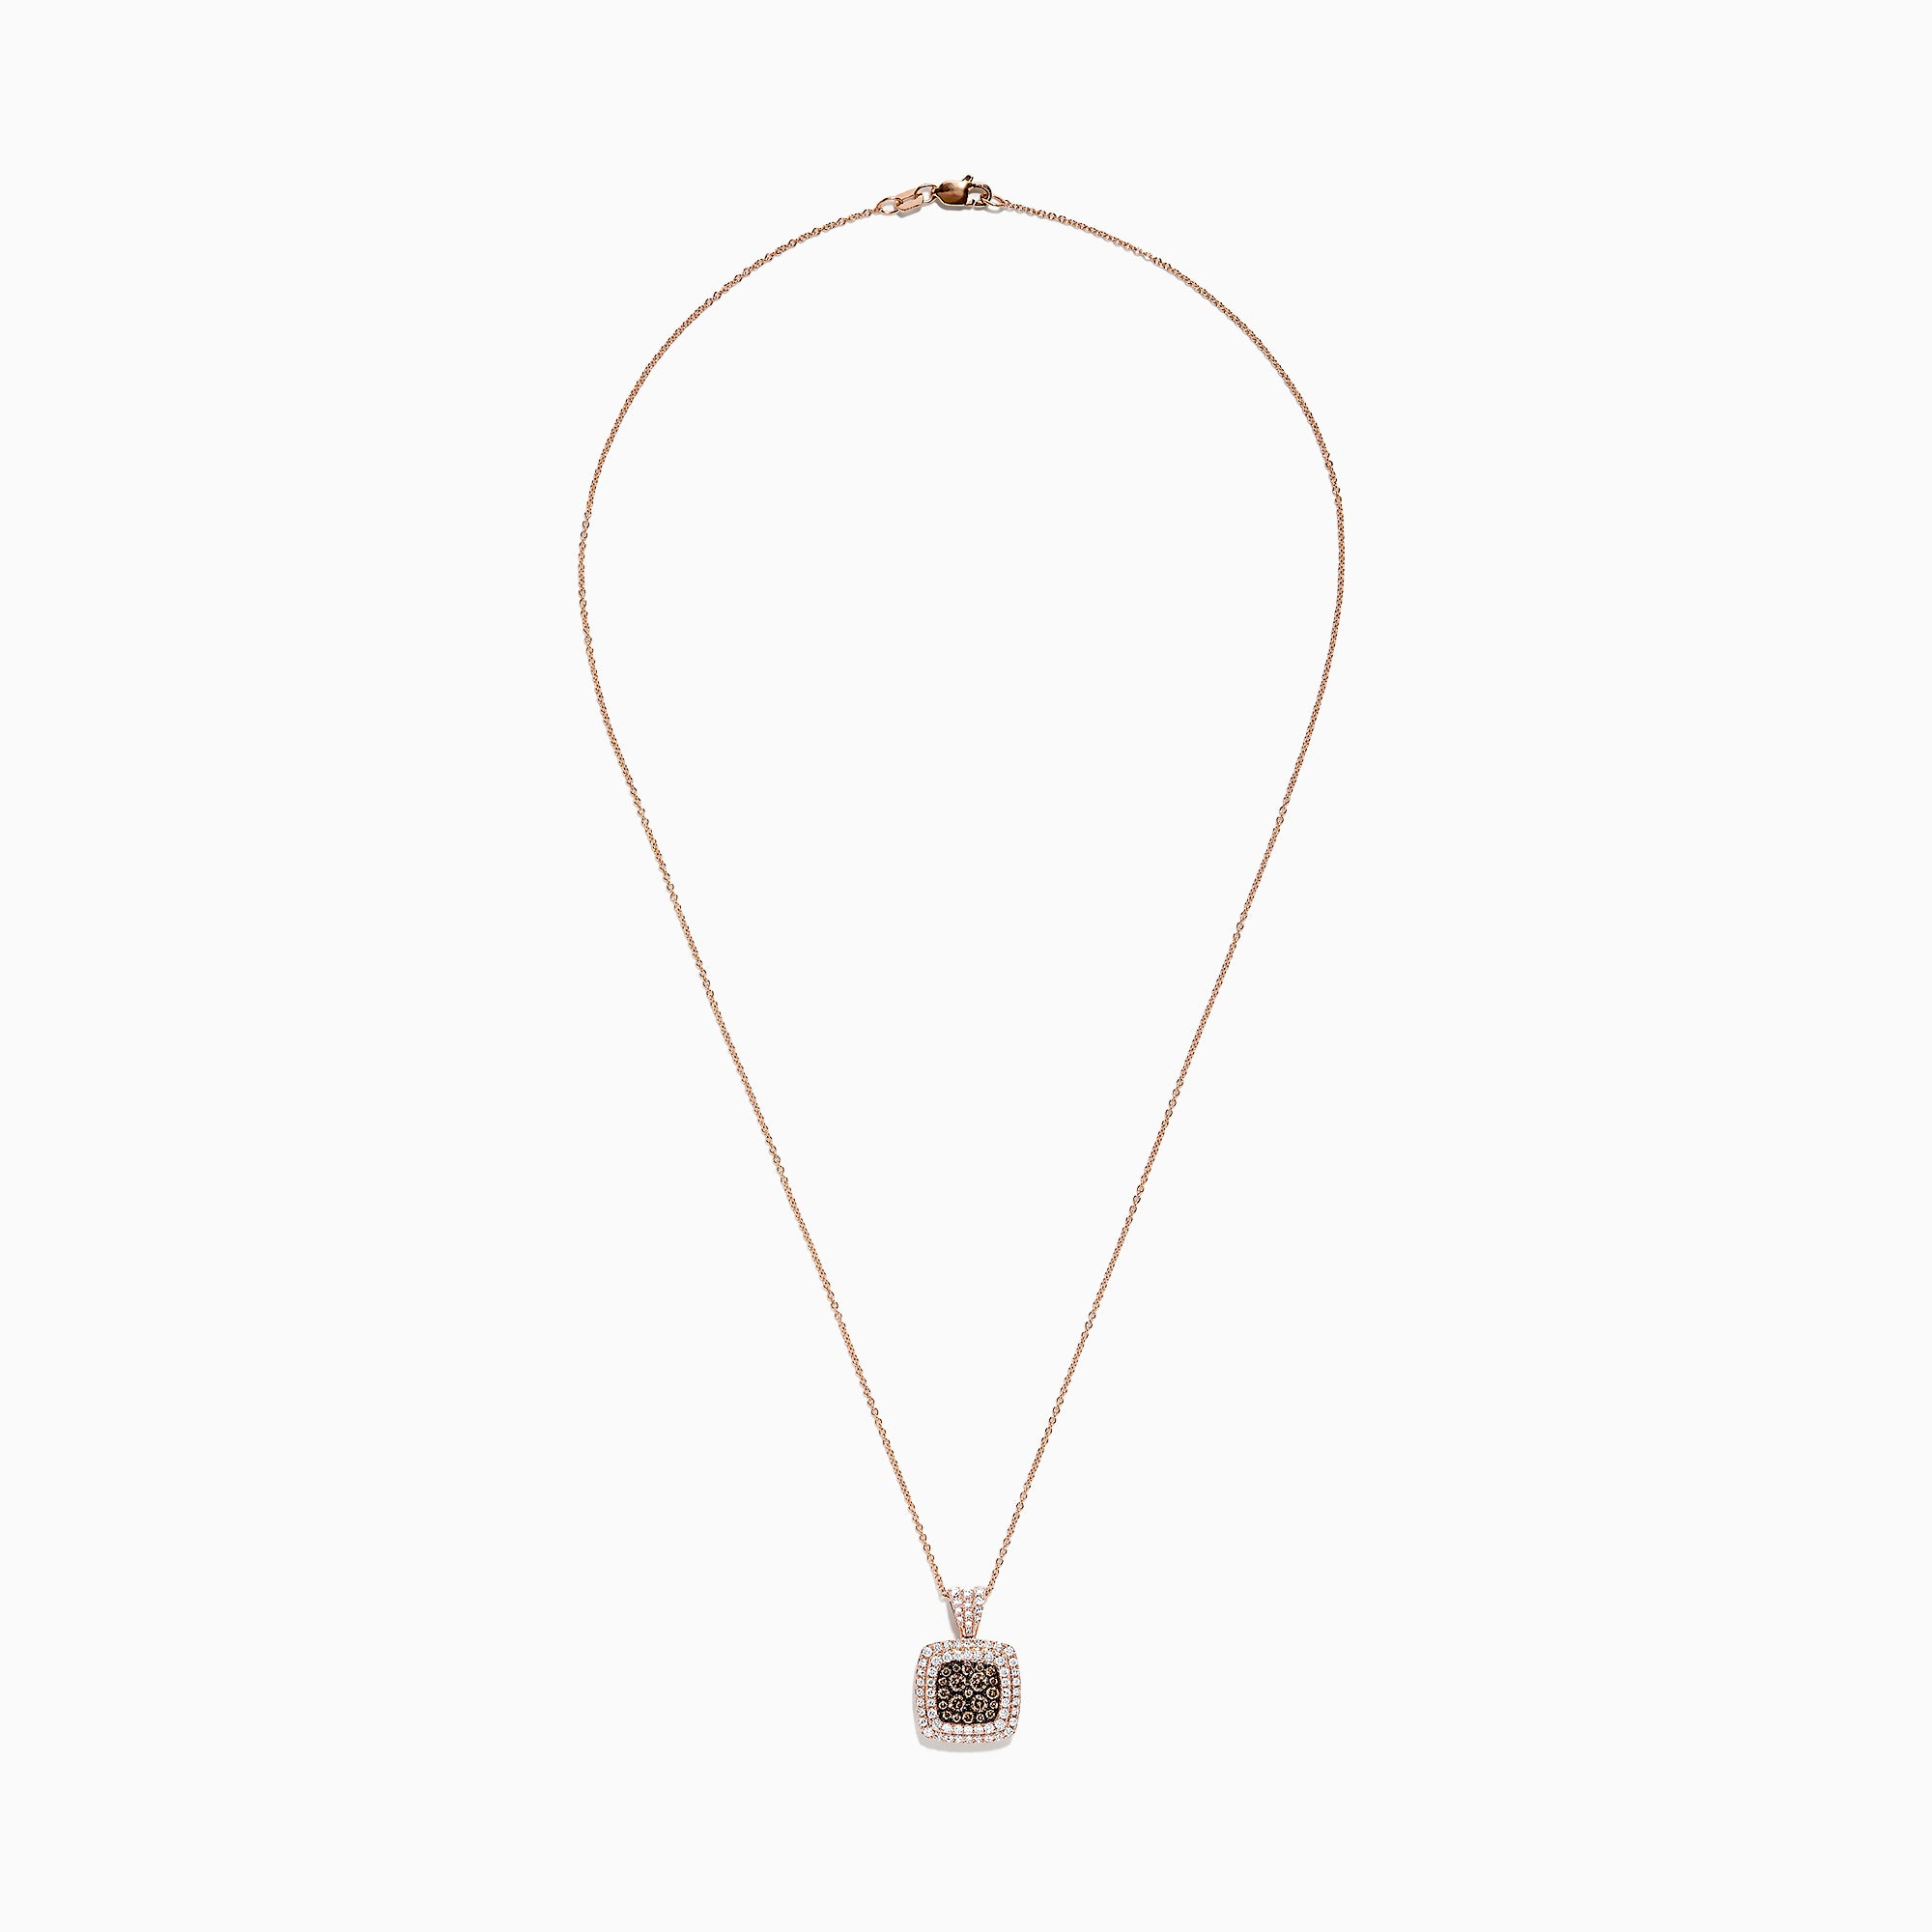 Effy 14K Rose Gold Espresso and White Diamond Pendant, 0.89 TCW